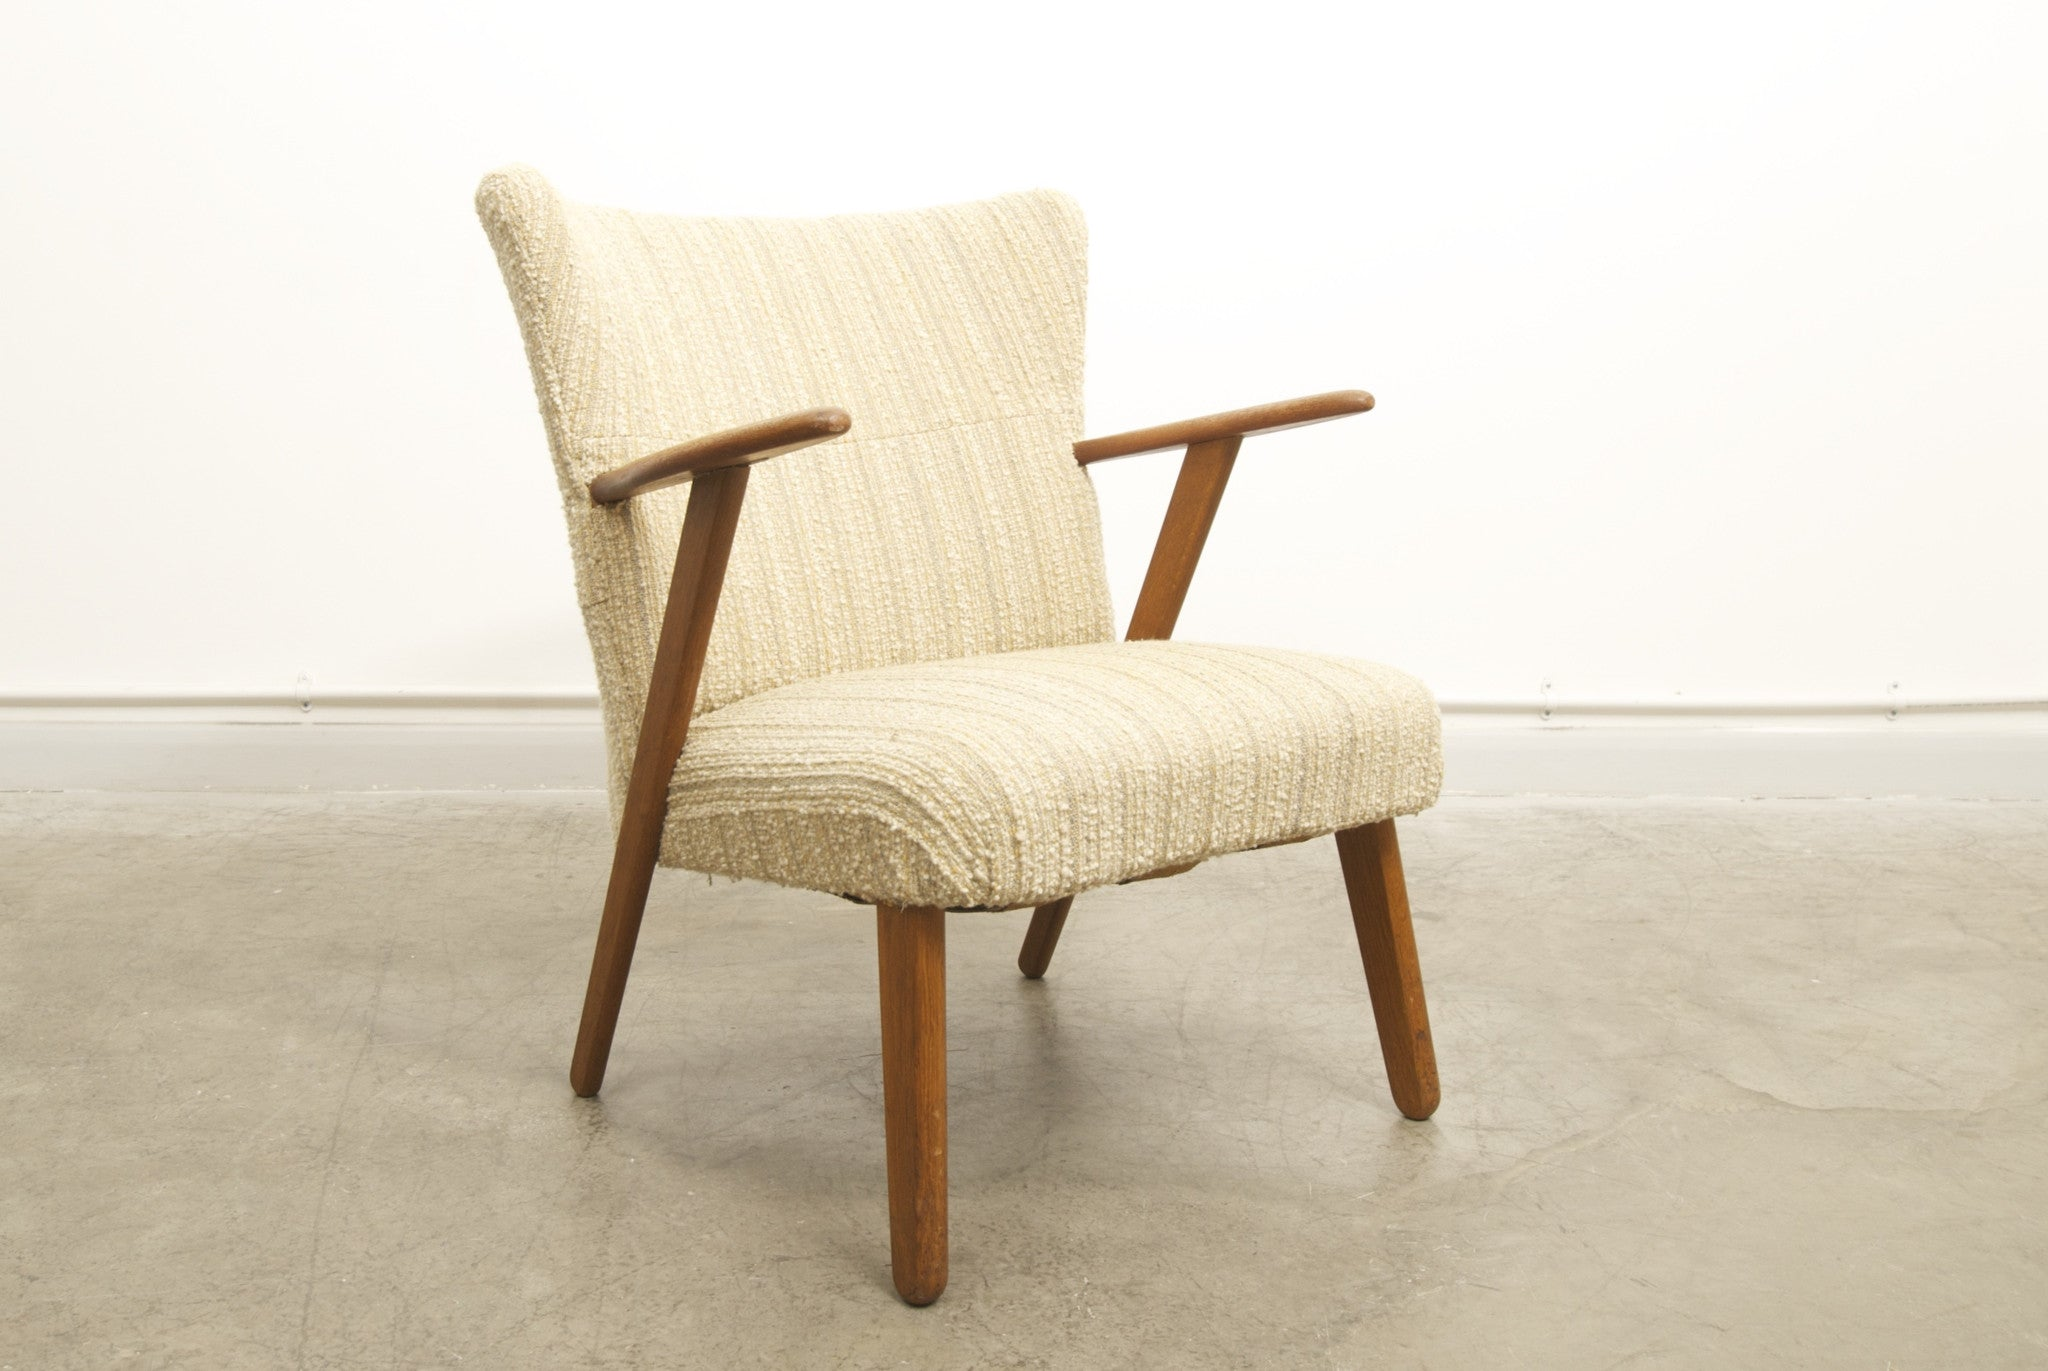 Teak occasional chair no. 2